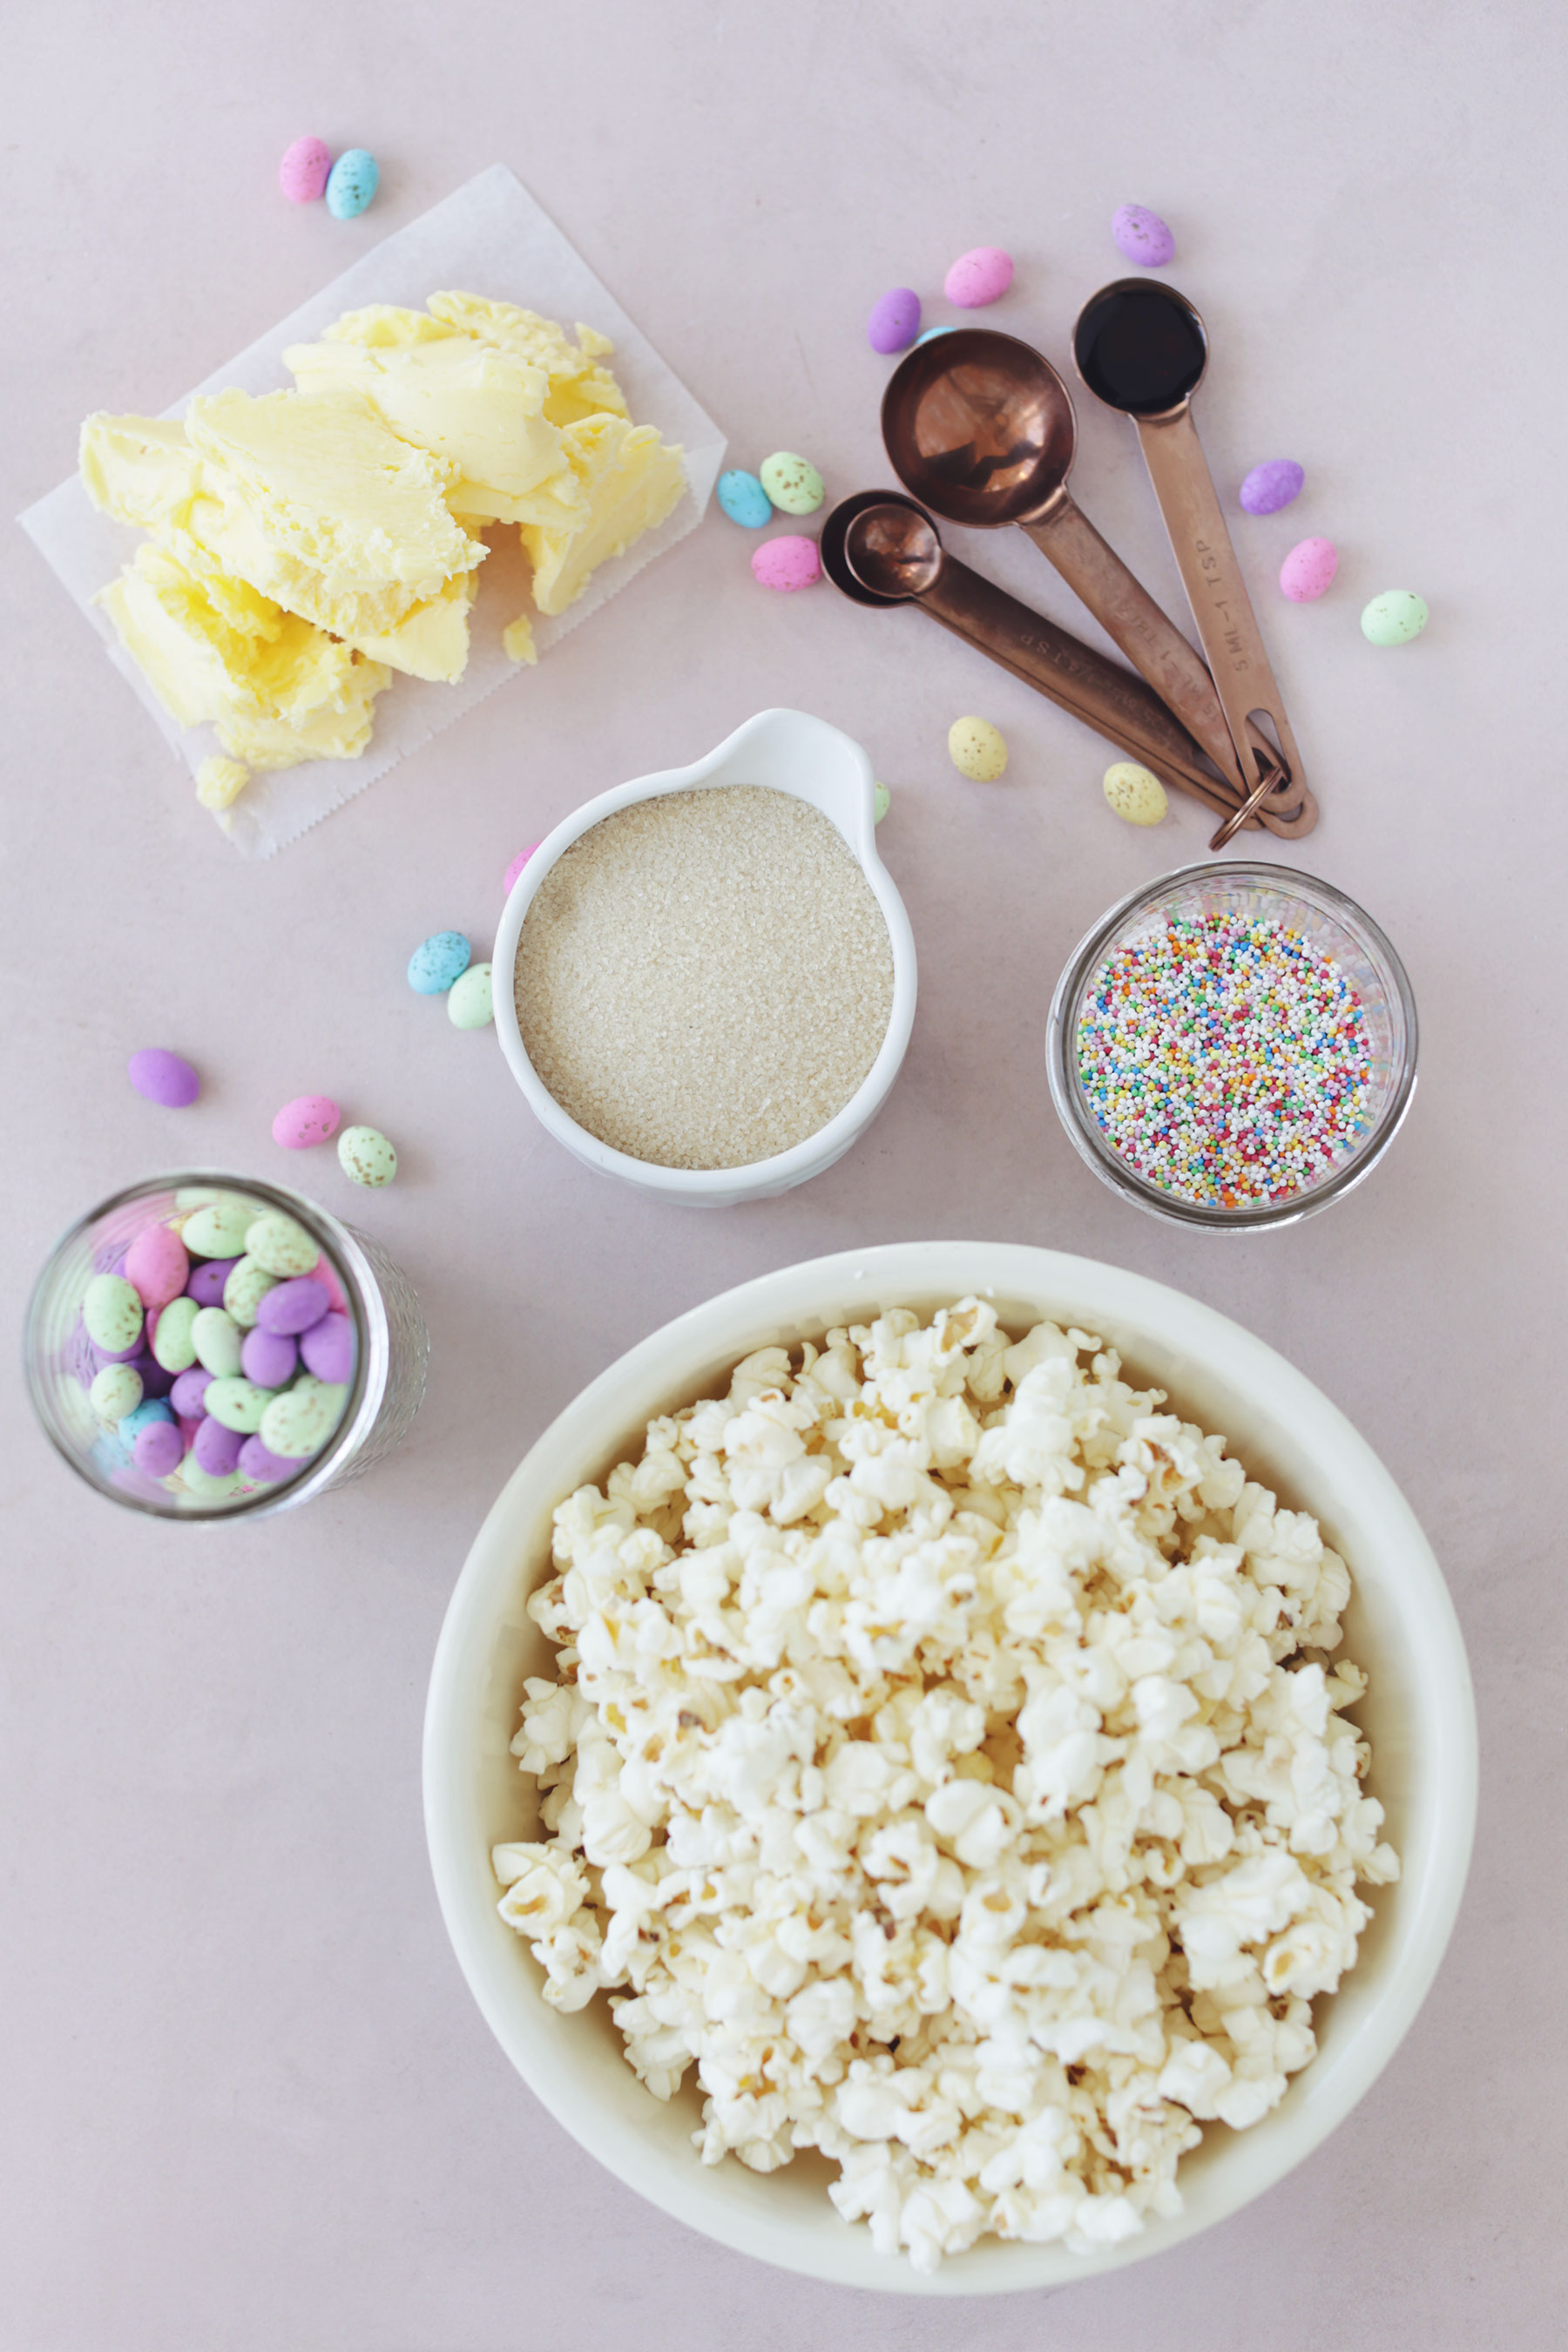 Caramel-Popcorn-with-speckled-eggs-and-sprinkles-7